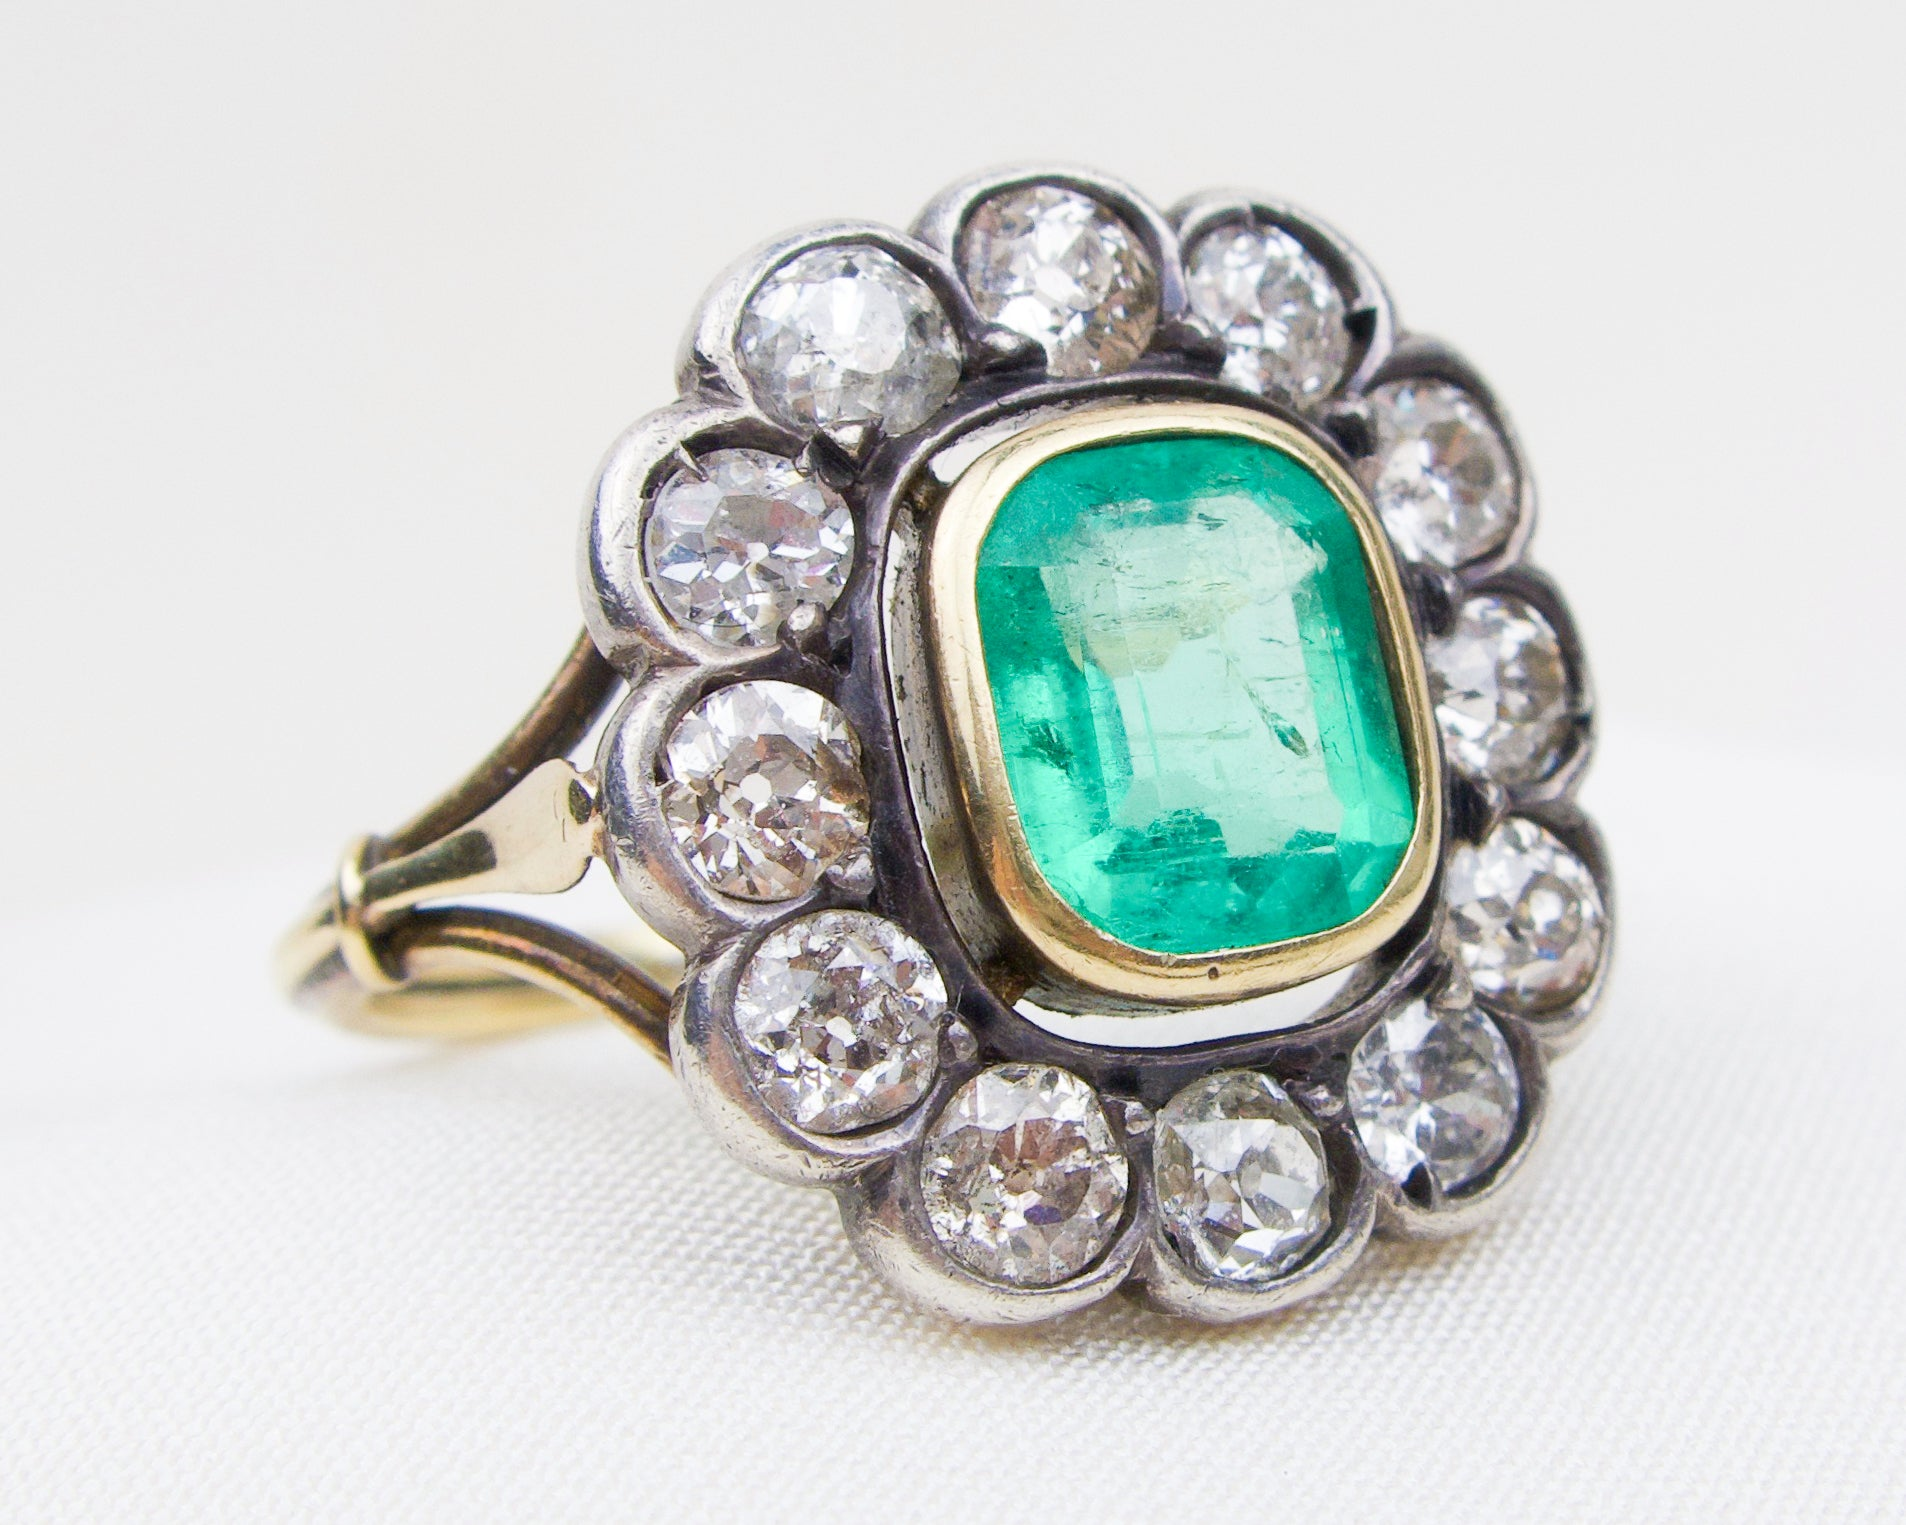 c. 1900 Emerald and Diamond Halo Ring